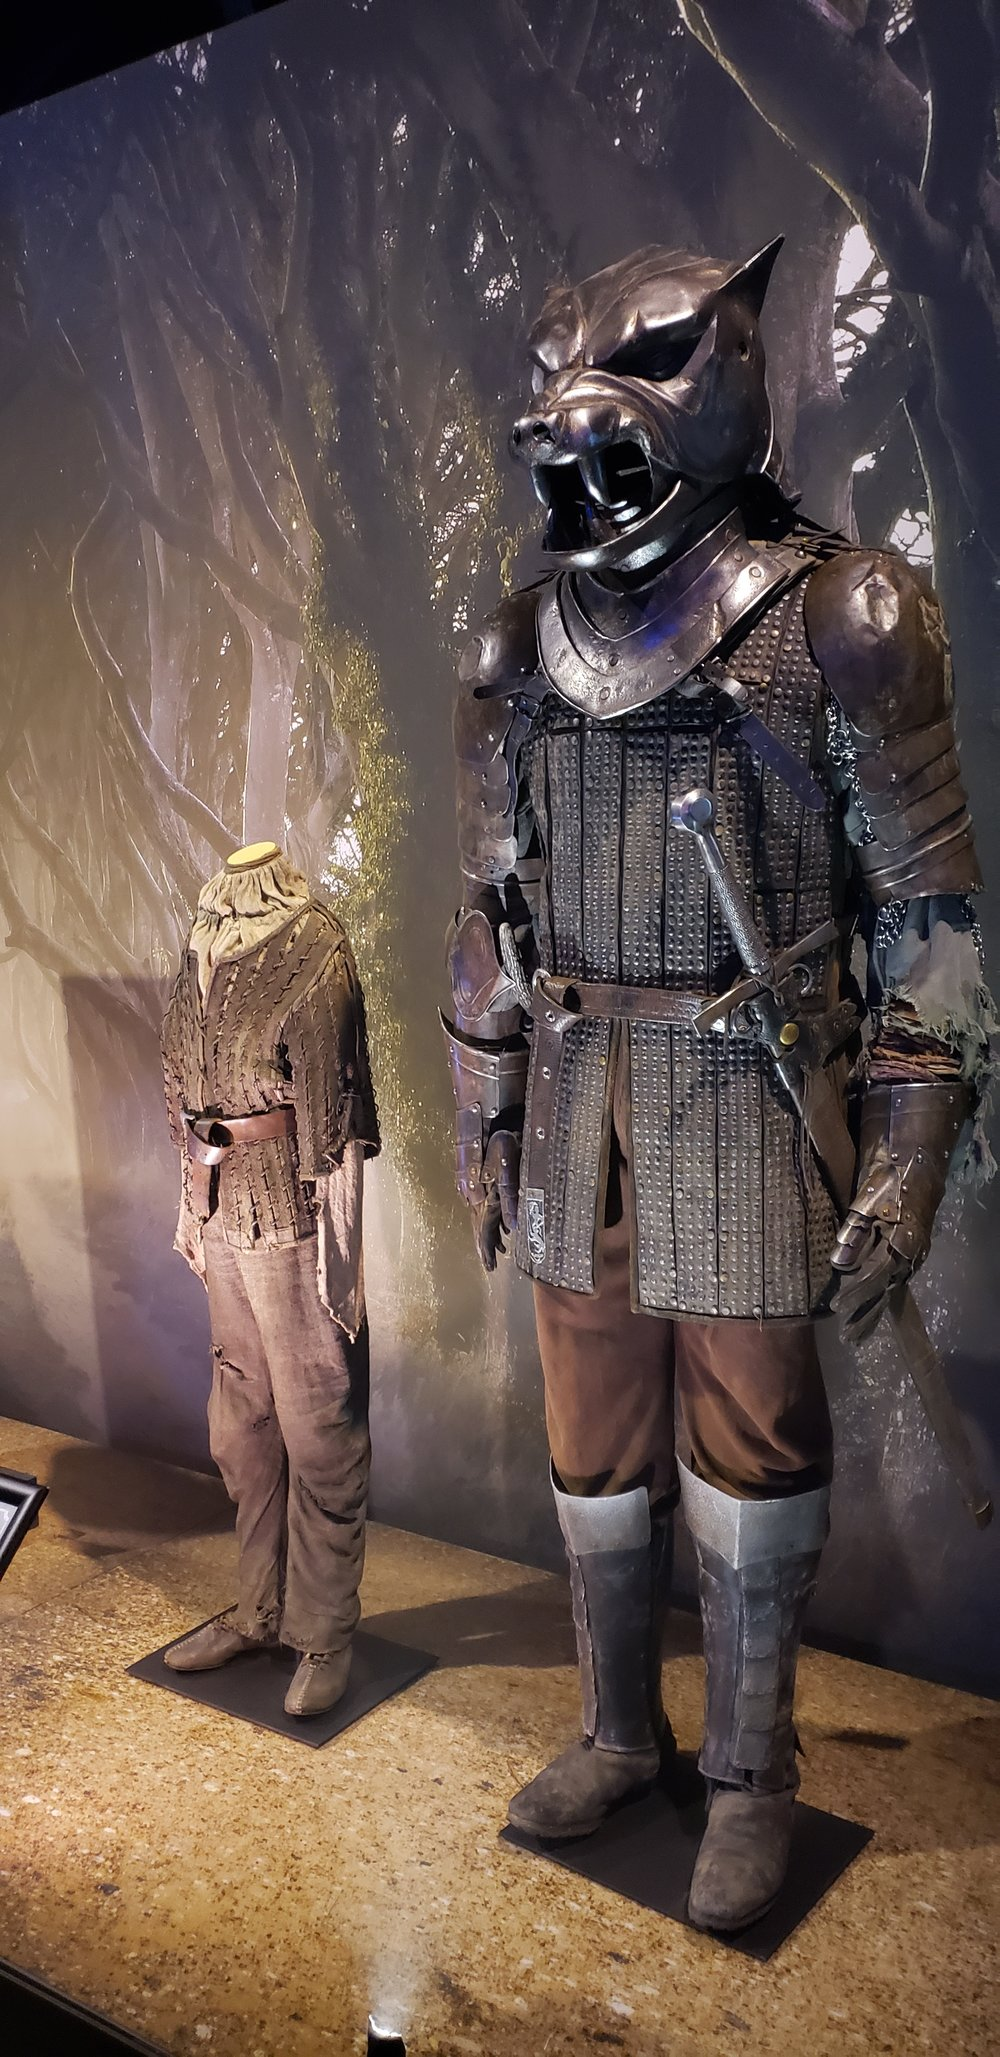 The Hound's armor and Arya Stark's costume